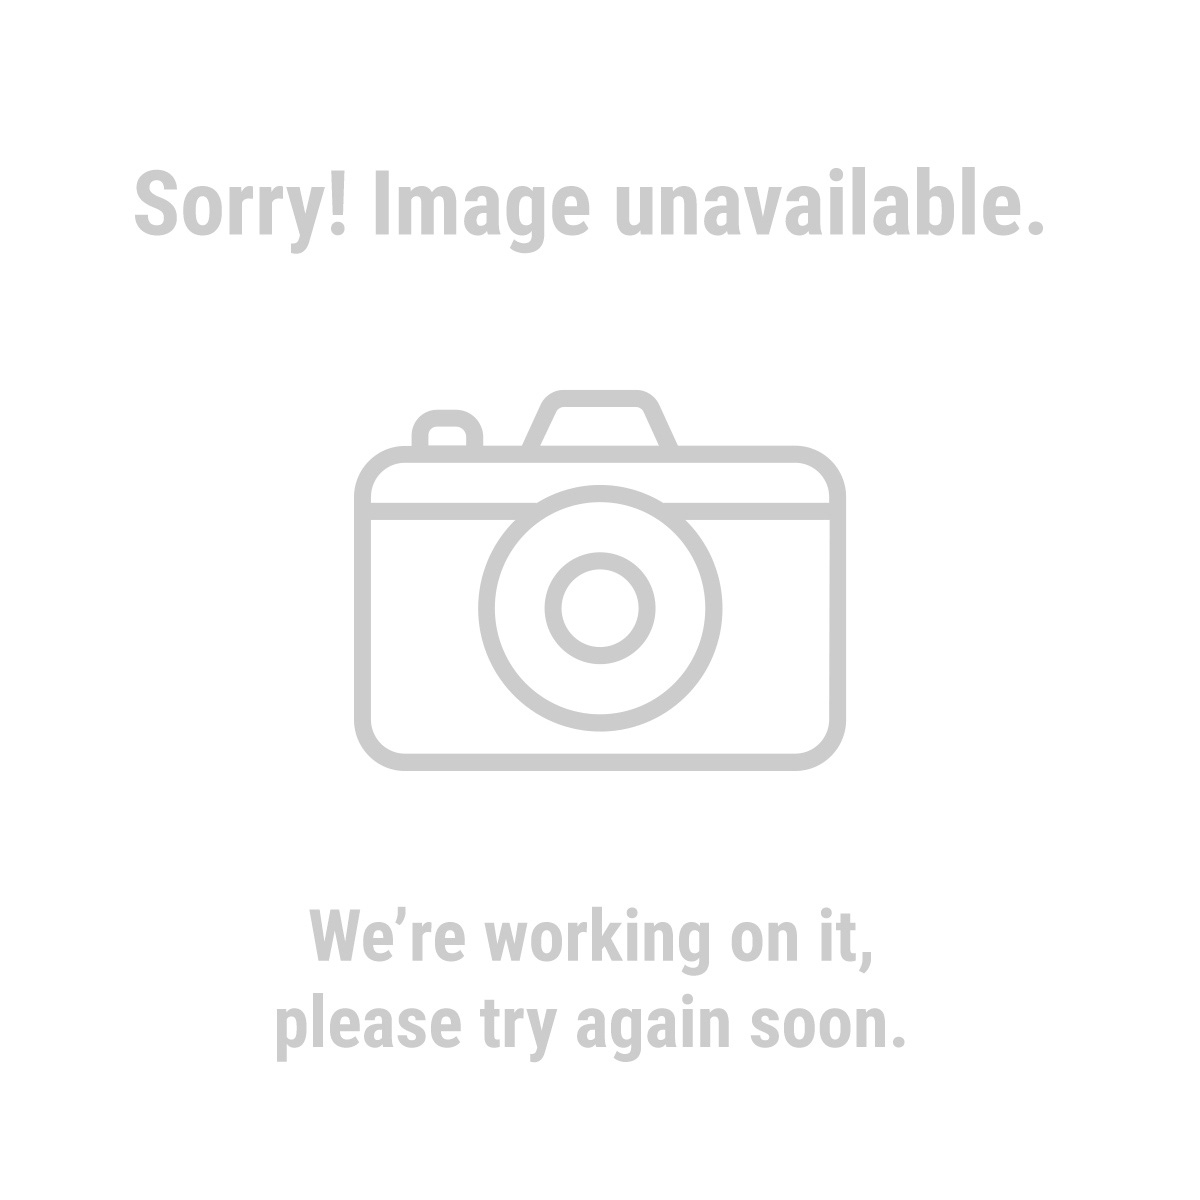 """Central-Machinery 95391 1-1/2"""" x 25 Ft. PVC Discharge Hose"""